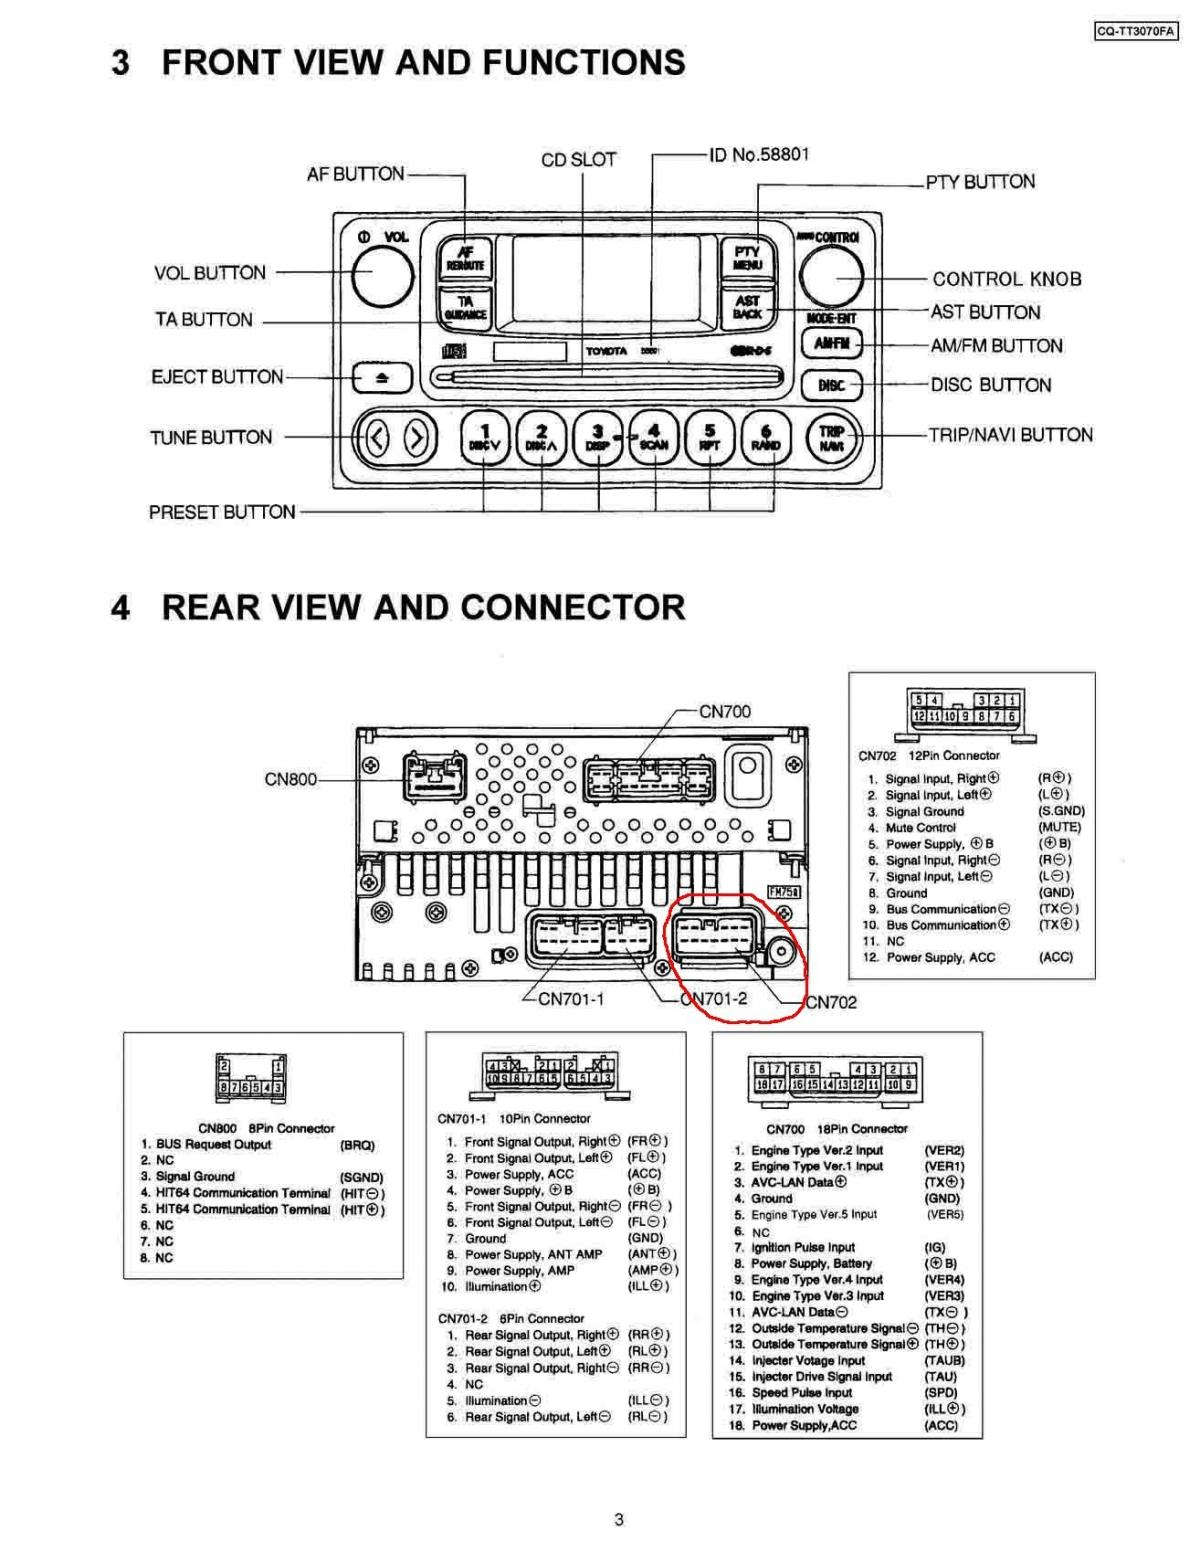 celica gen7 58806 sat nav hu into gen6 *problem* audio video palfinger wiring diagrams toyota 58806 wiring diagram #3